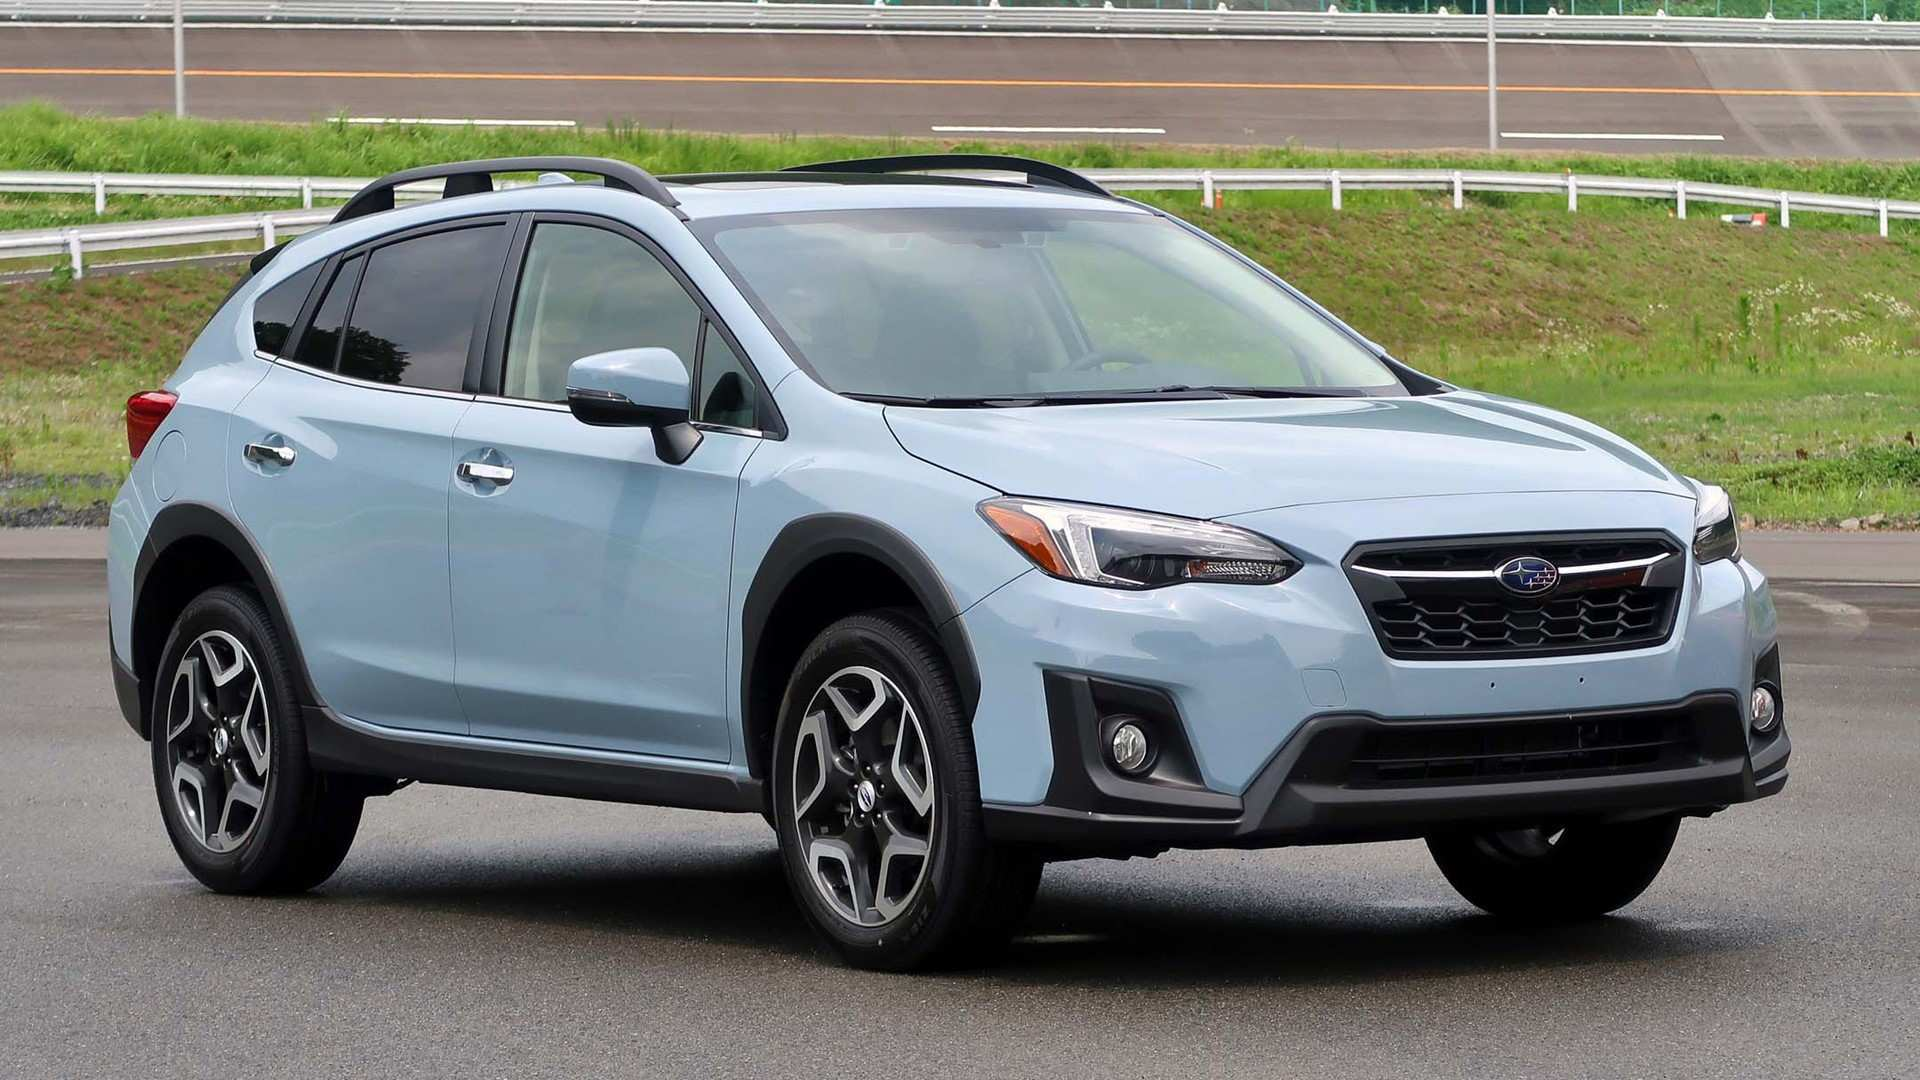 42 Best Review Subaru Plug In Hybrid 2020 Configurations for Subaru Plug In Hybrid 2020